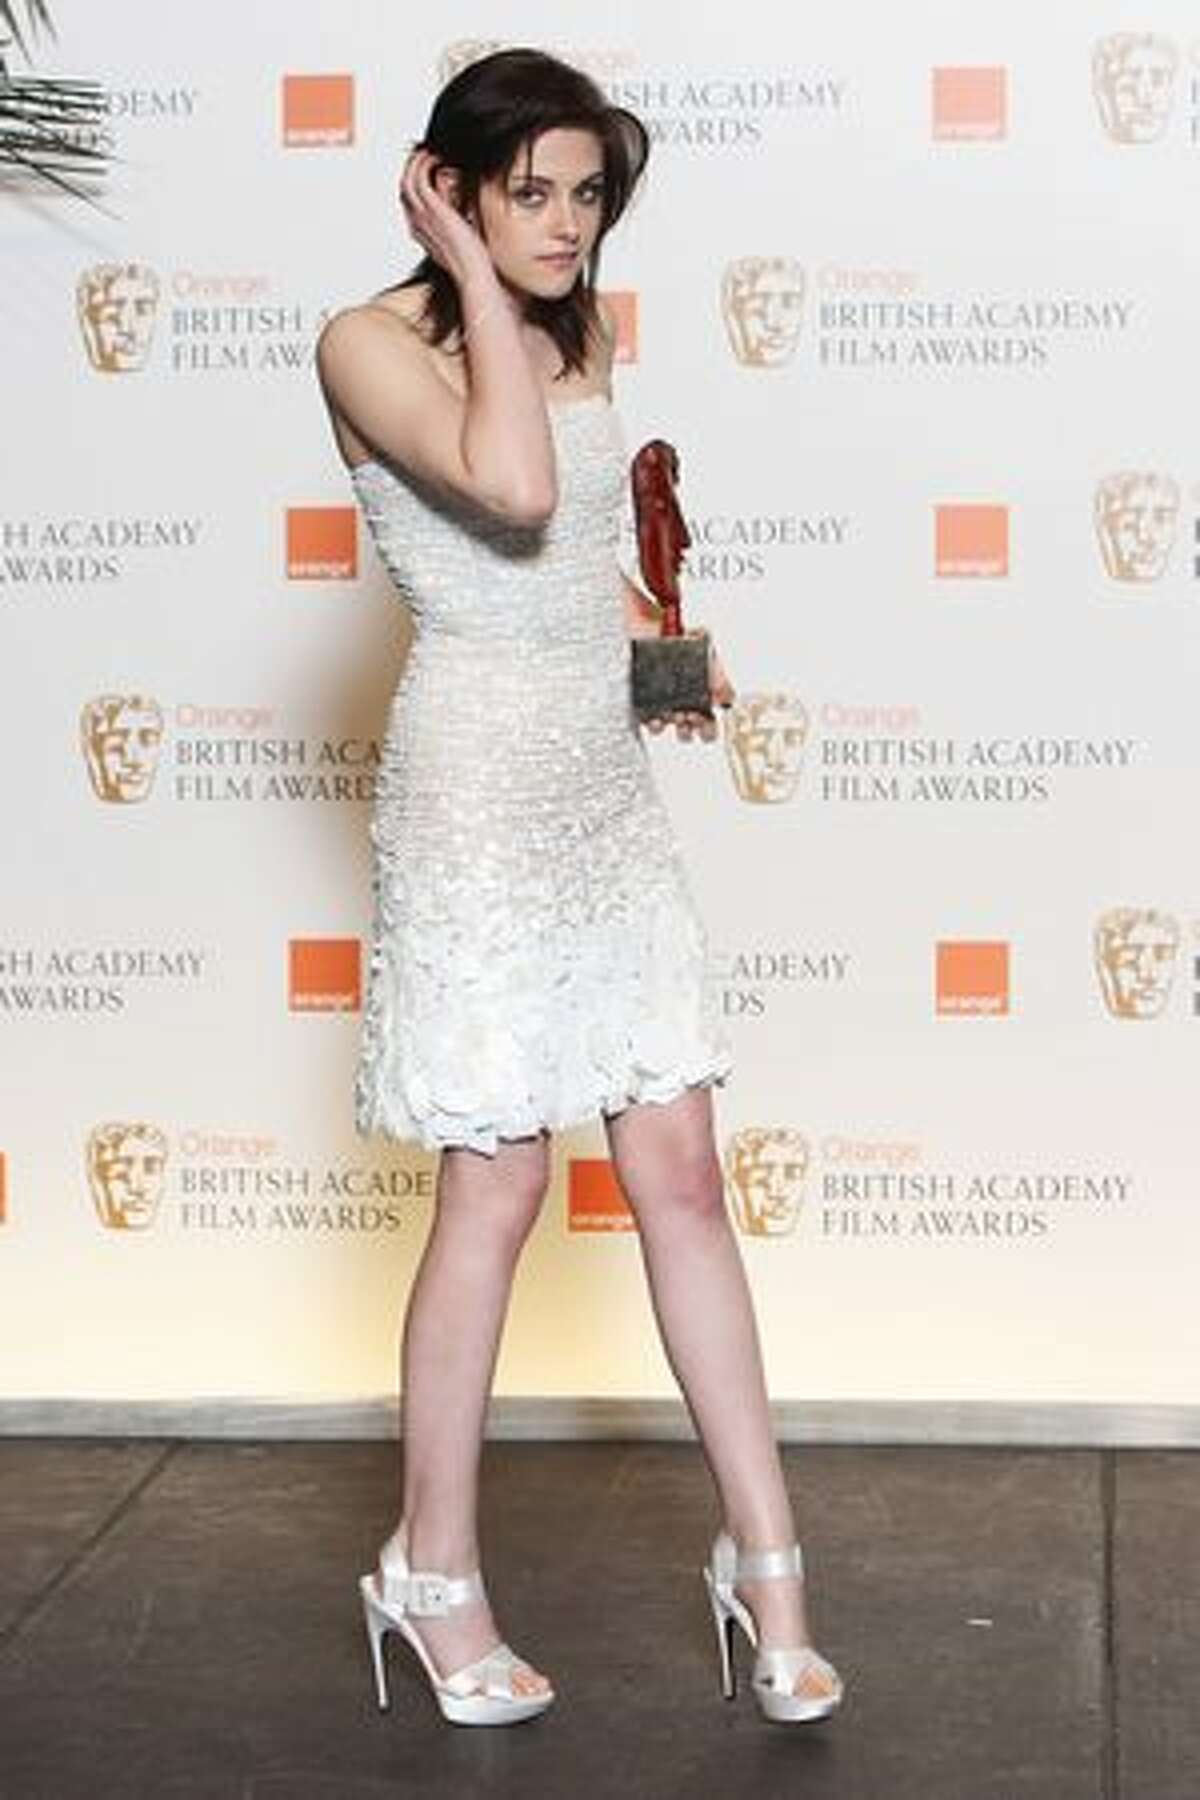 Kristen Stewart poses with her rising star award at the Orange British Academy Film Awards in London on Feb. 21.